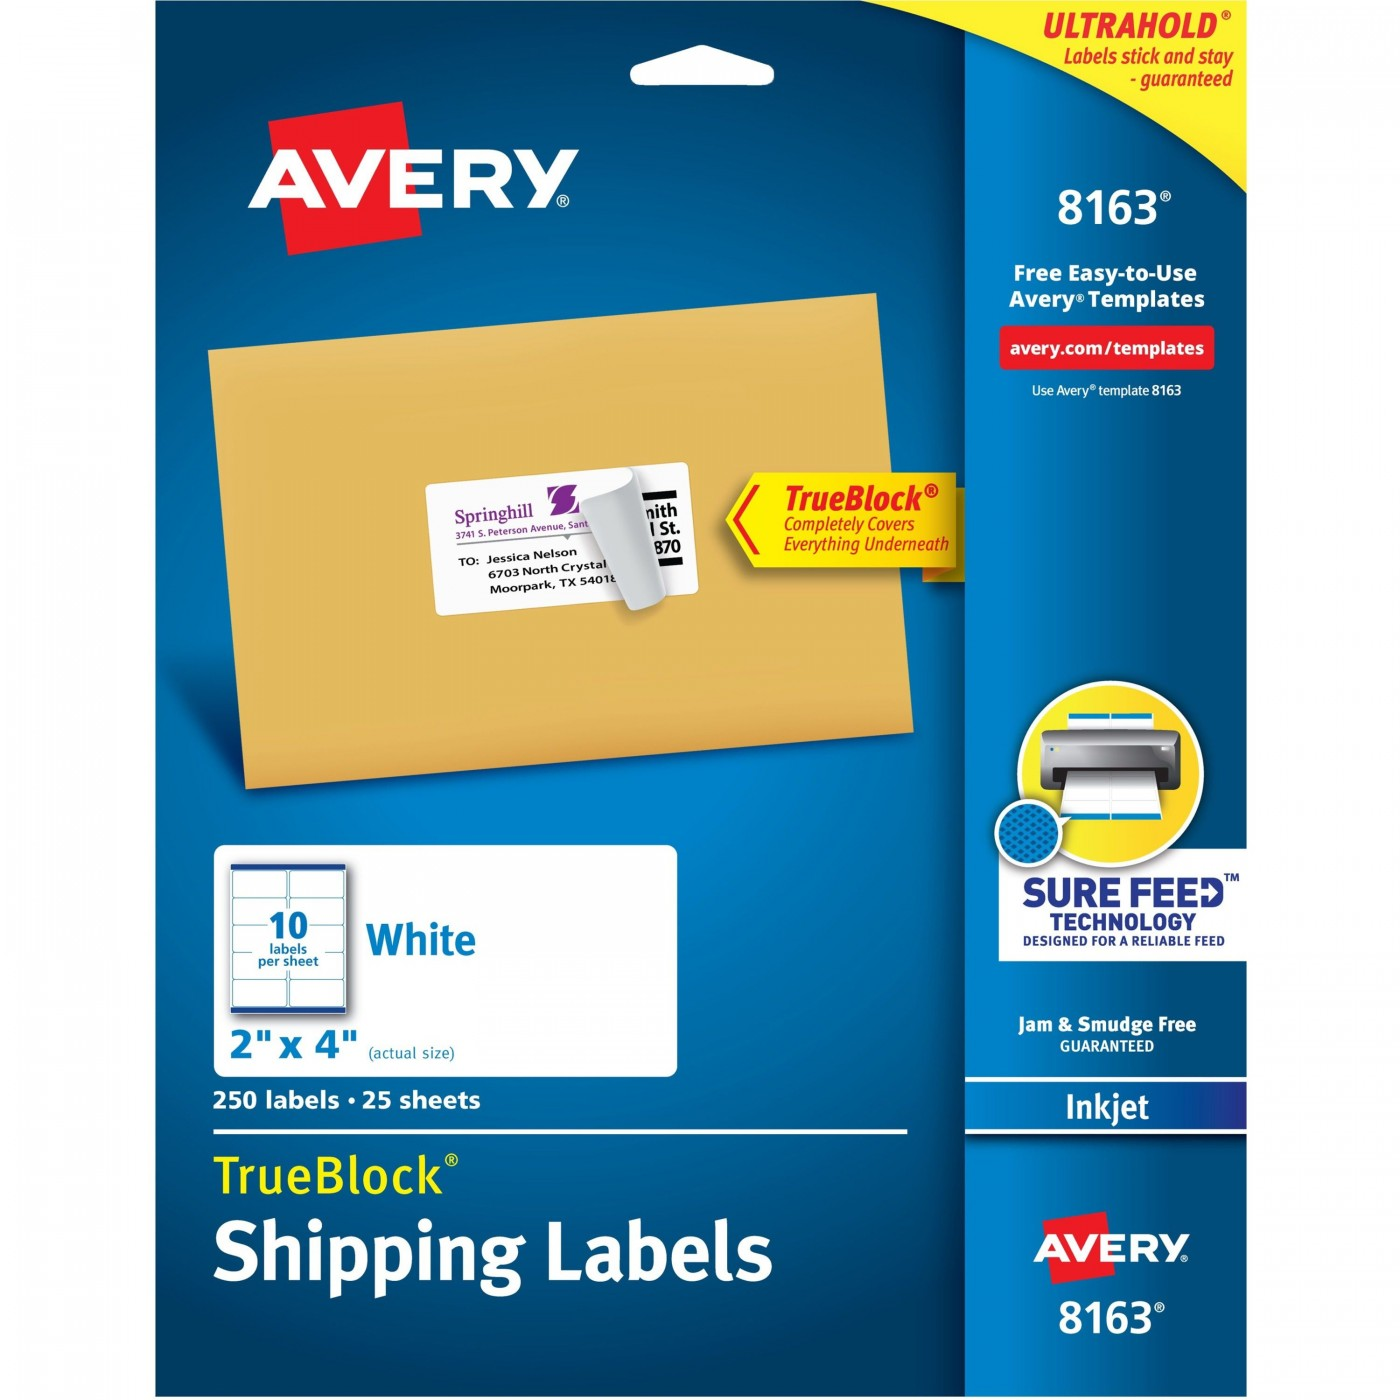 002 Marvelou Free Avery Addres Label Template For Mac High Definition  51601400